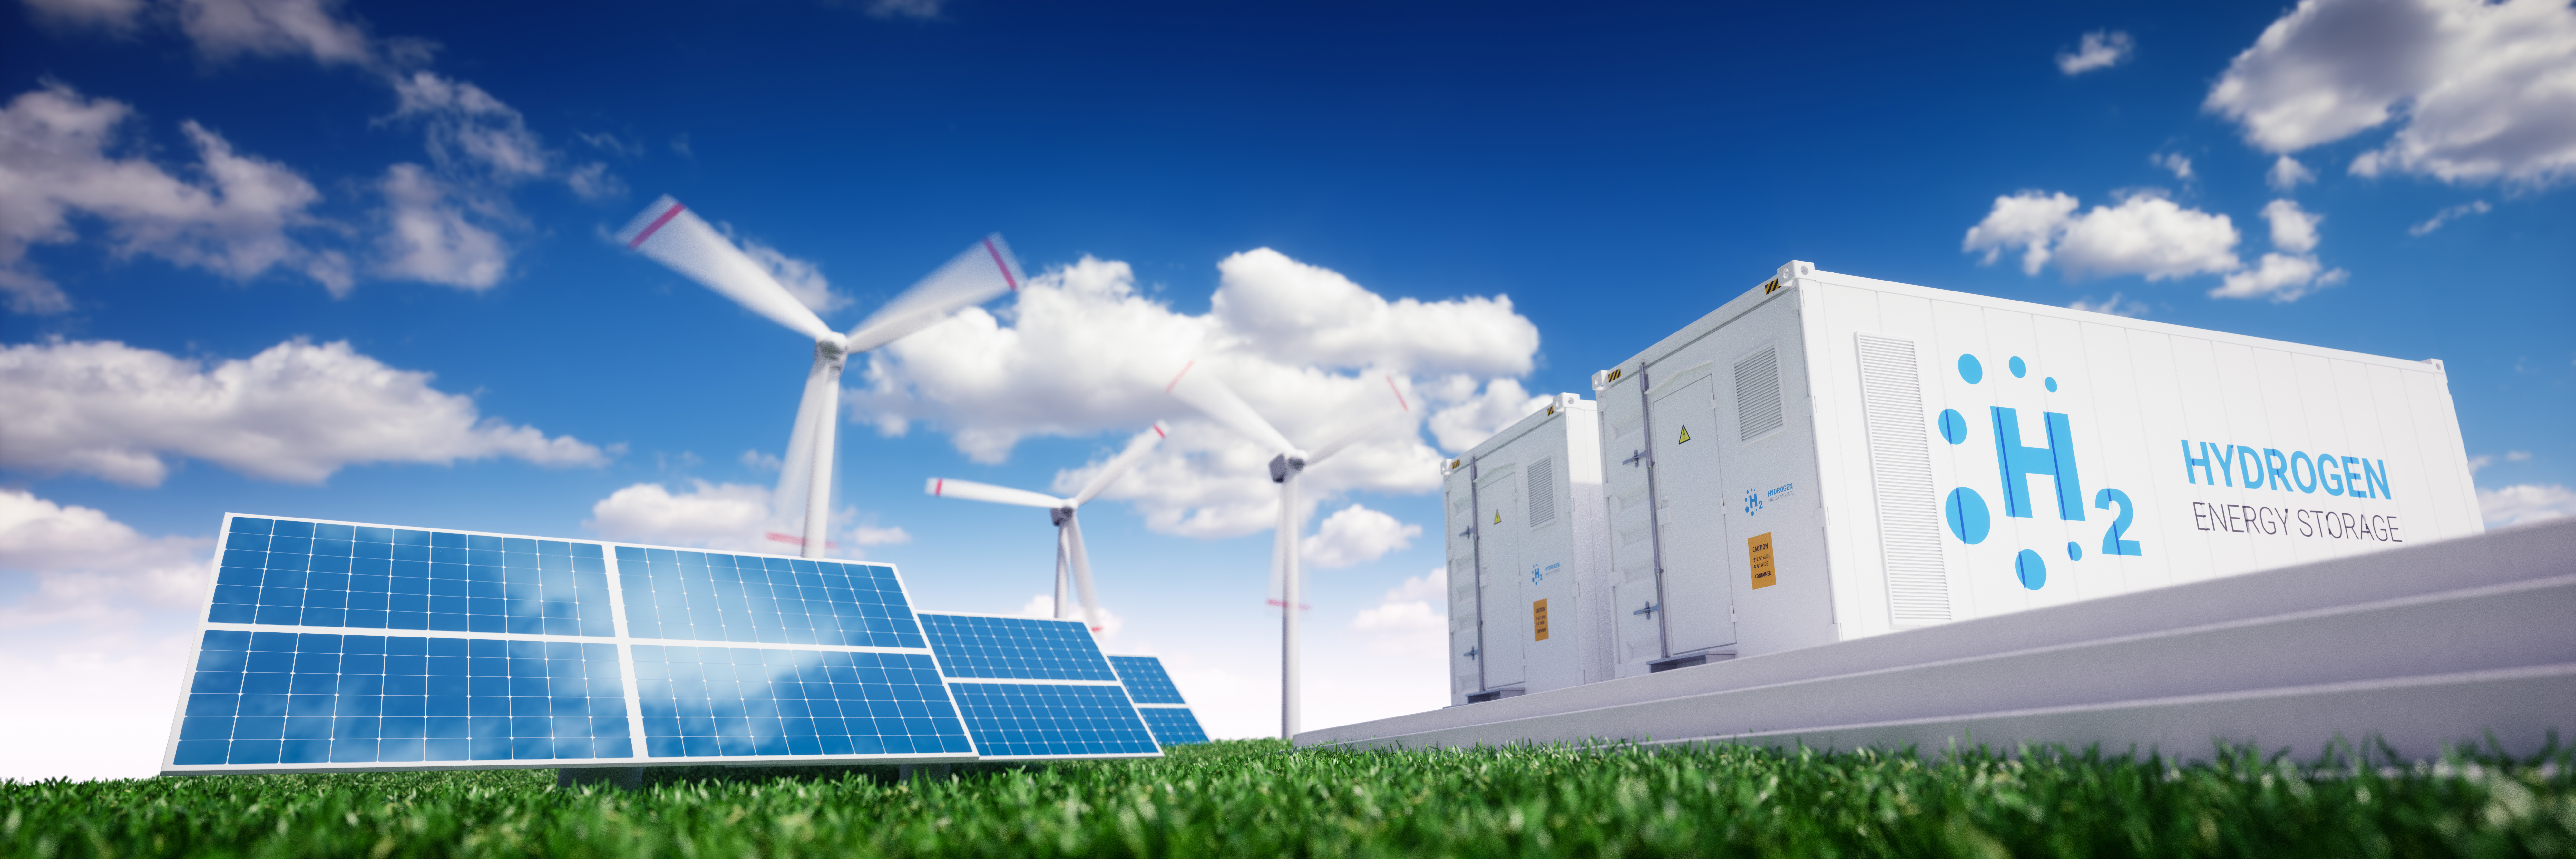 First Energy Consultation Forum project to receive EU funding